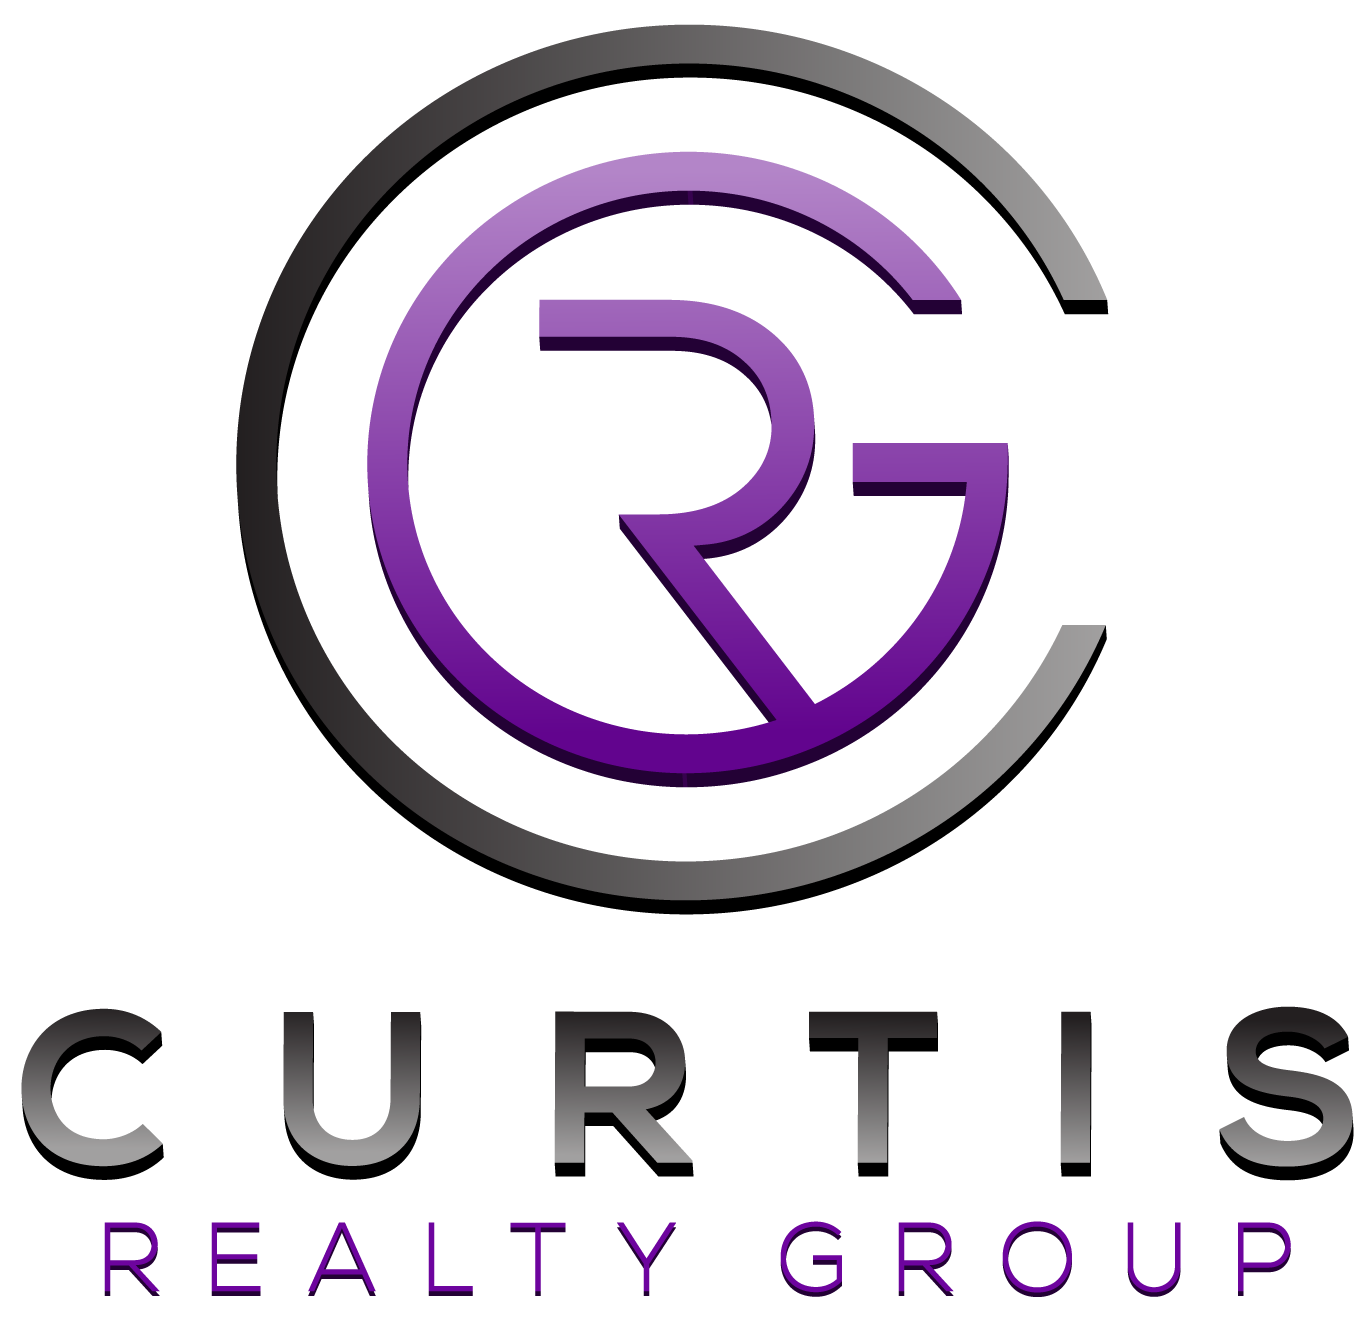 Curtis Realty Group